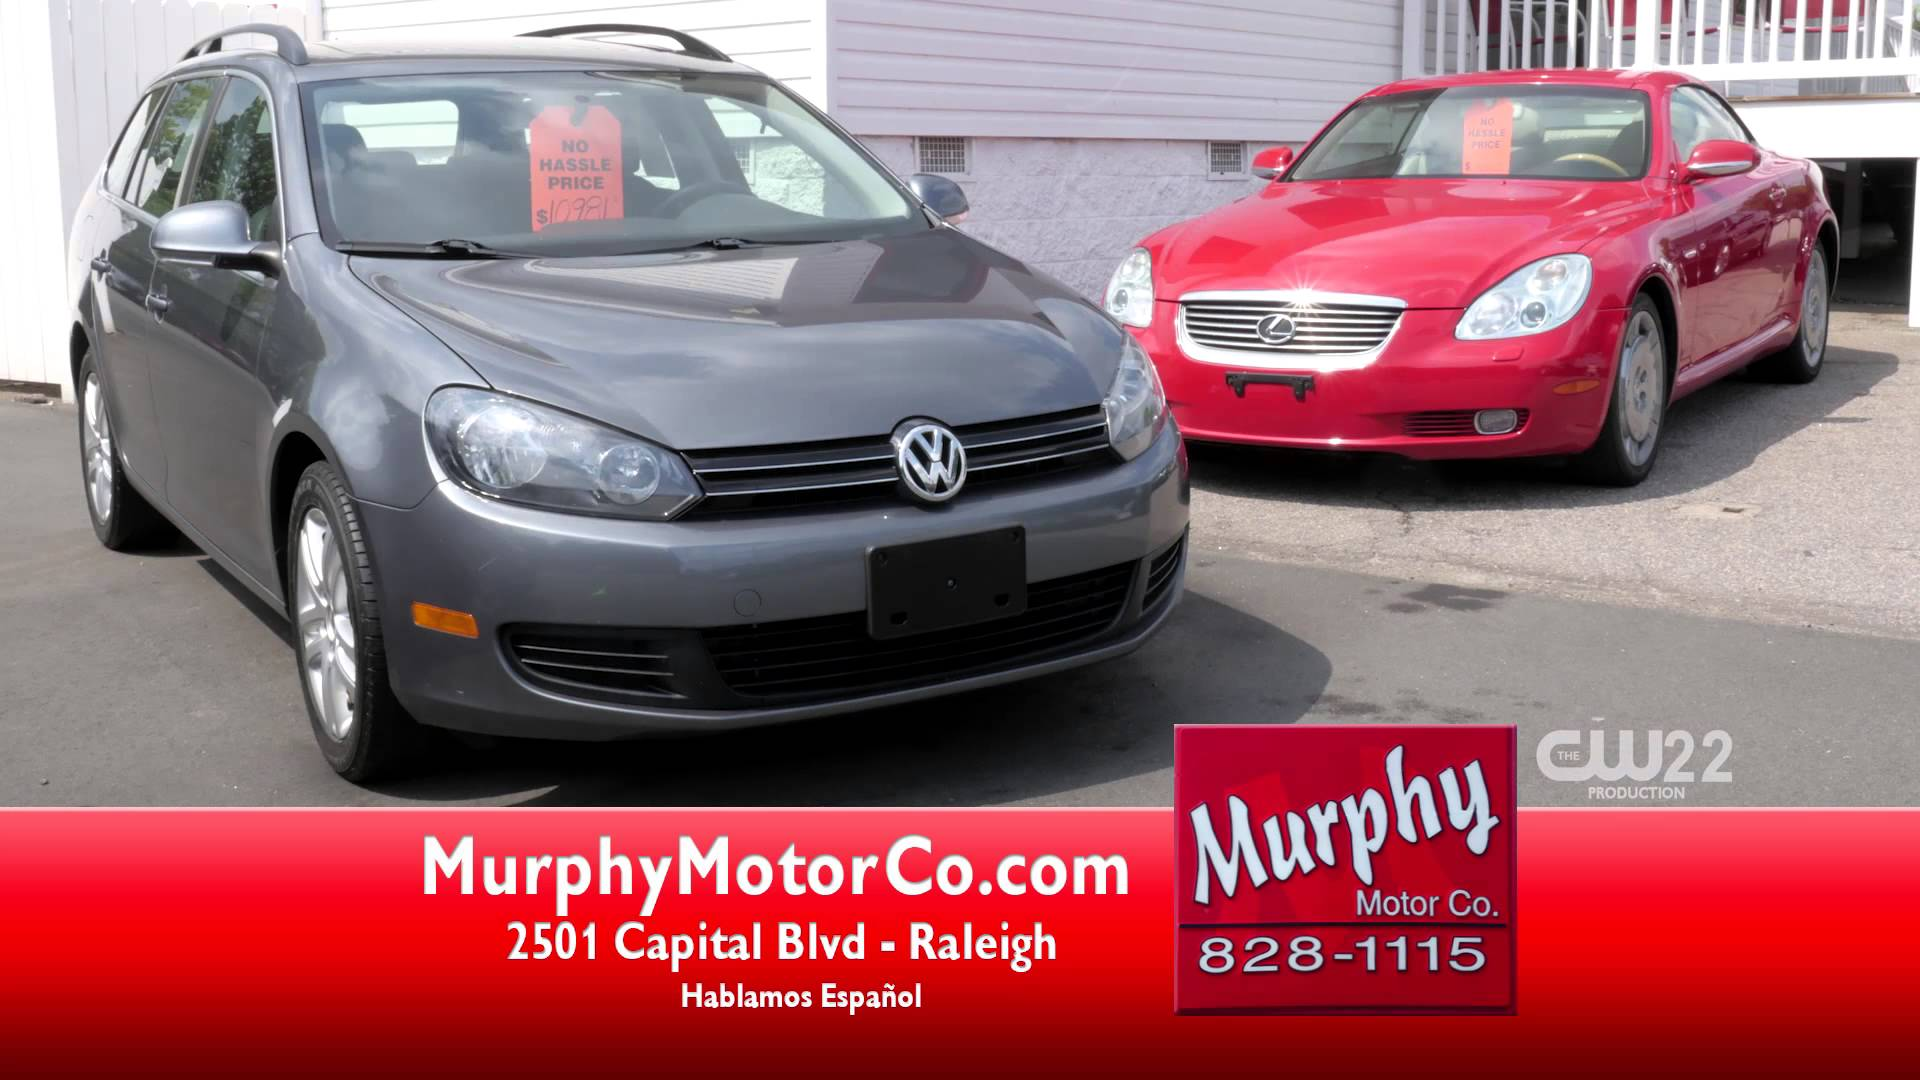 murphy motor co raleigh nc used car mercial